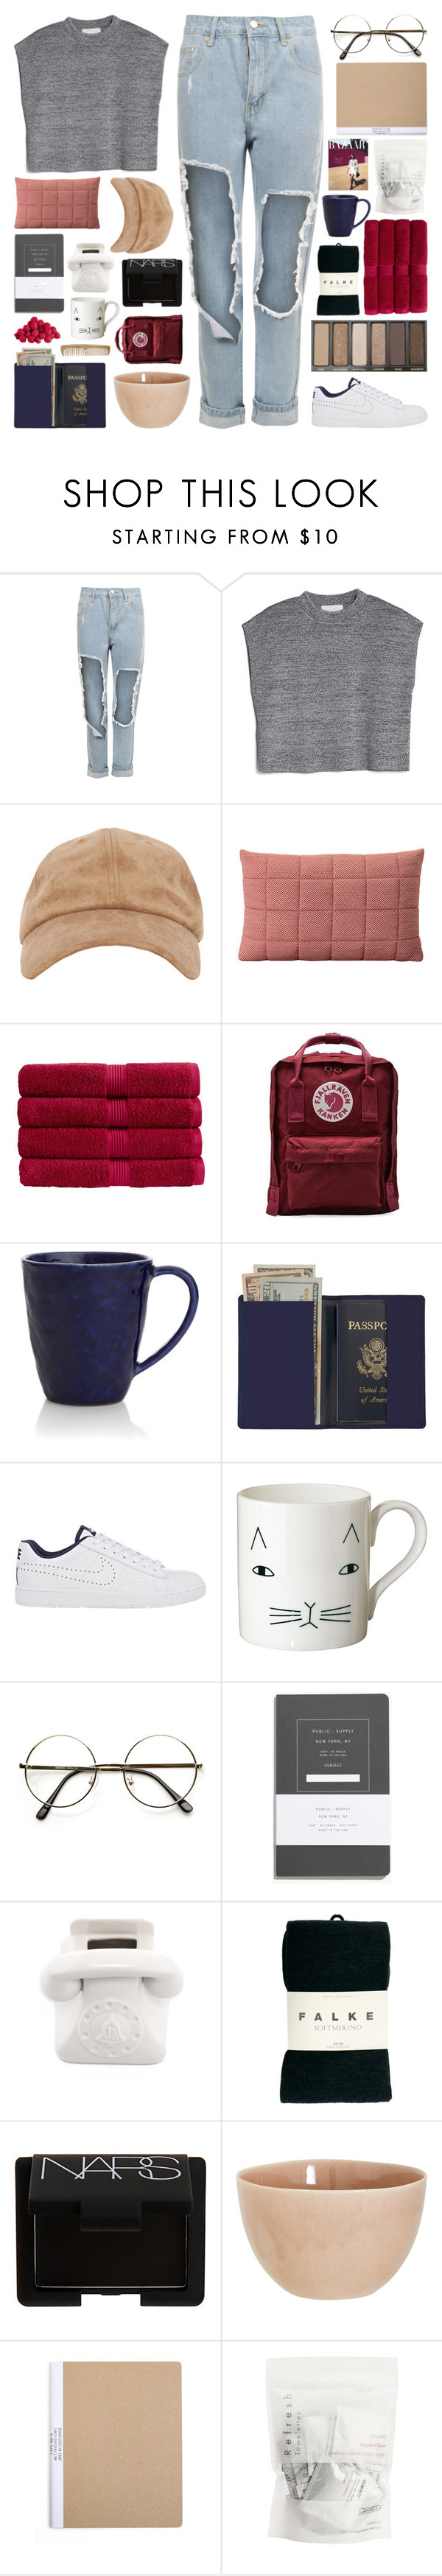 """demystify"" by randomn3ss ❤ liked on Polyvore featuring WearAll, MANGO, Muuto, Christy, Fjällräven, Crate and Barrel, Royce Leather, NIKE, Donna Wilson and Madewell"